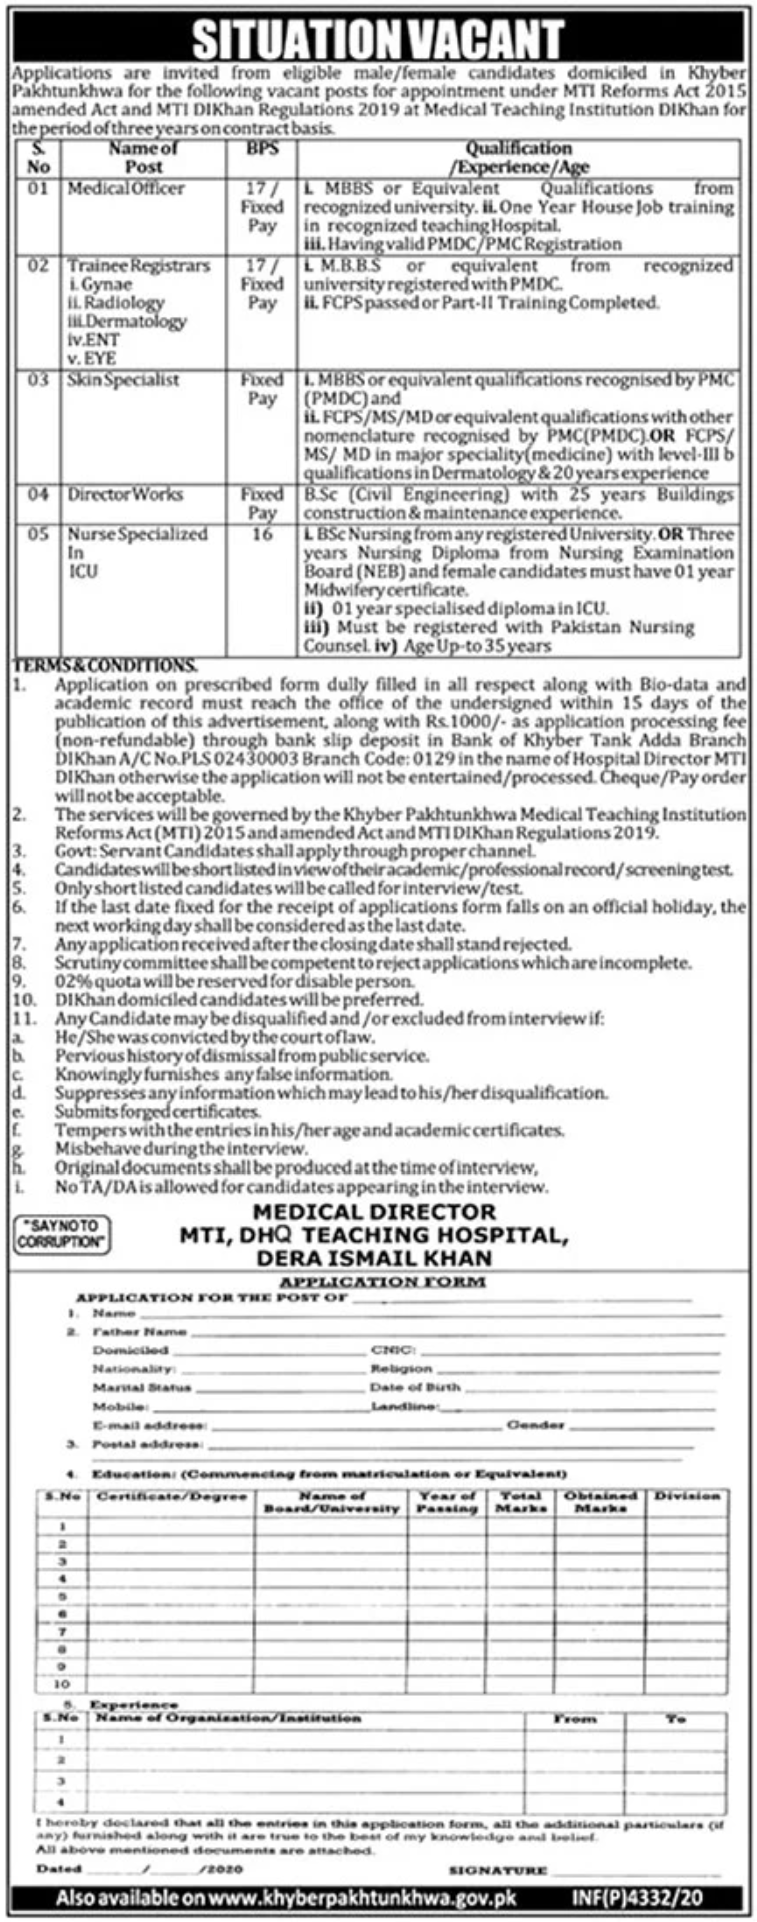 Medical Teaching Institution DI Khan Jobs November 2020